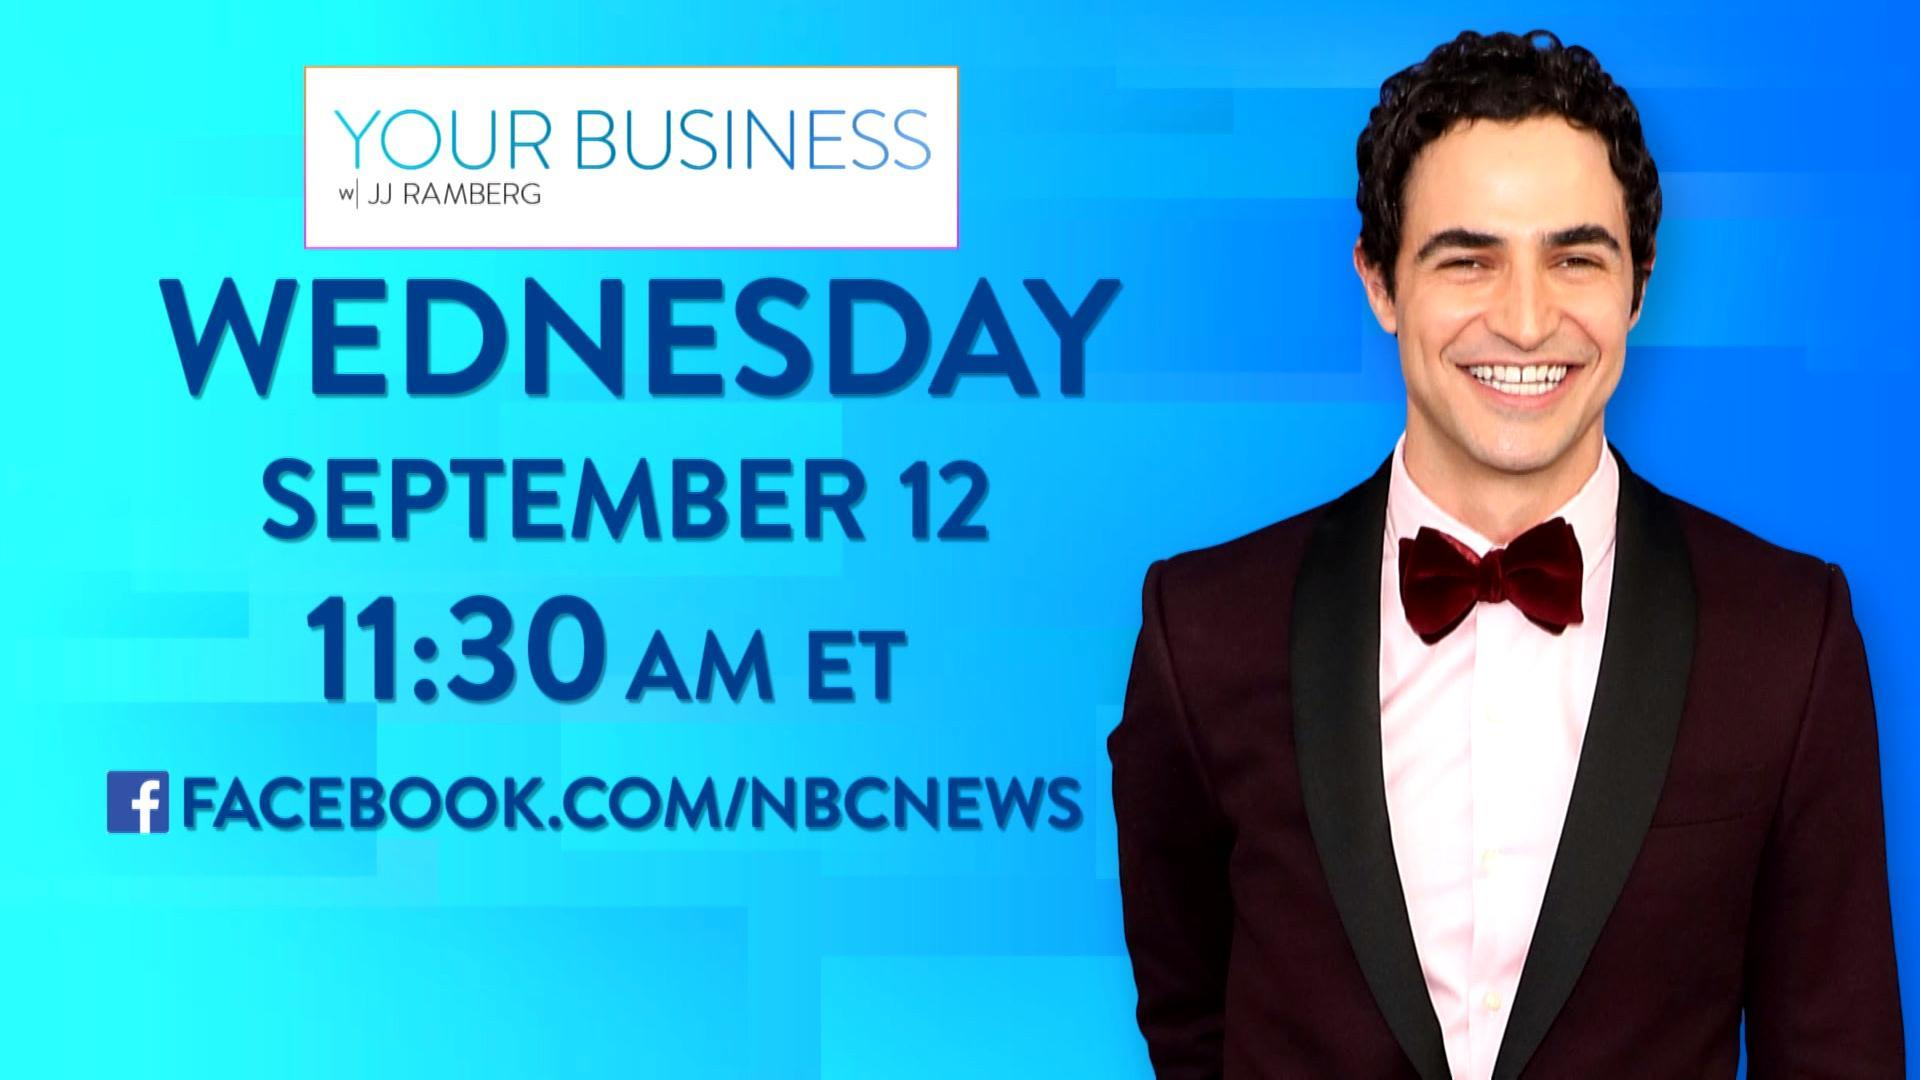 Walk the runway with Zac Posen on Facebook Live